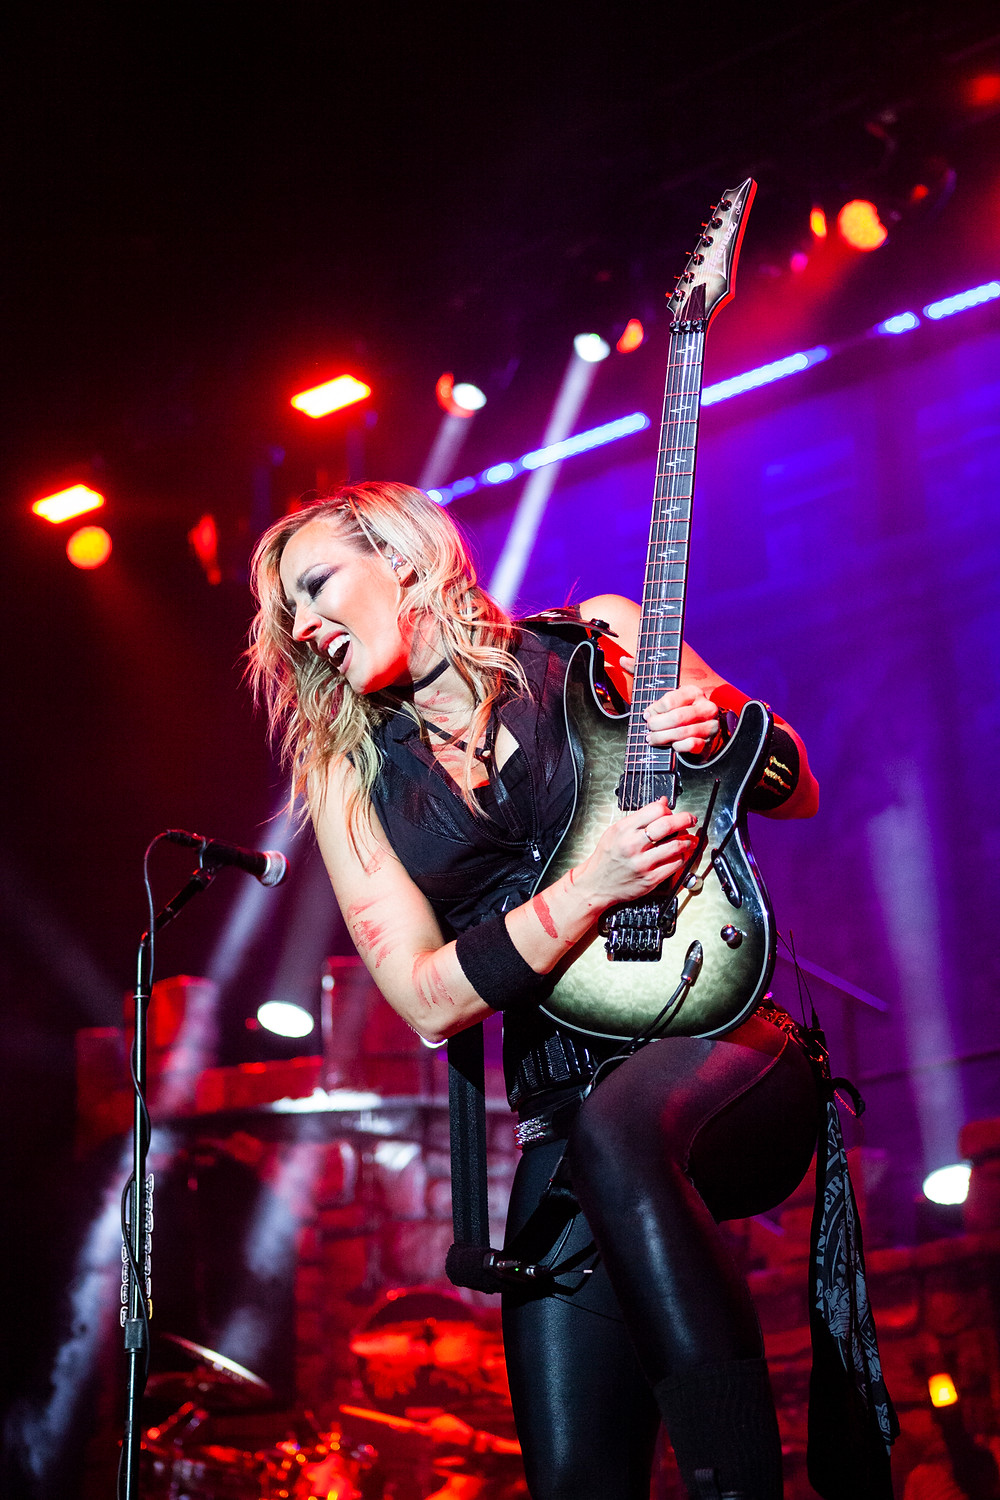 Nita Strauss with Alice Cooper, photo by Gili Dailes